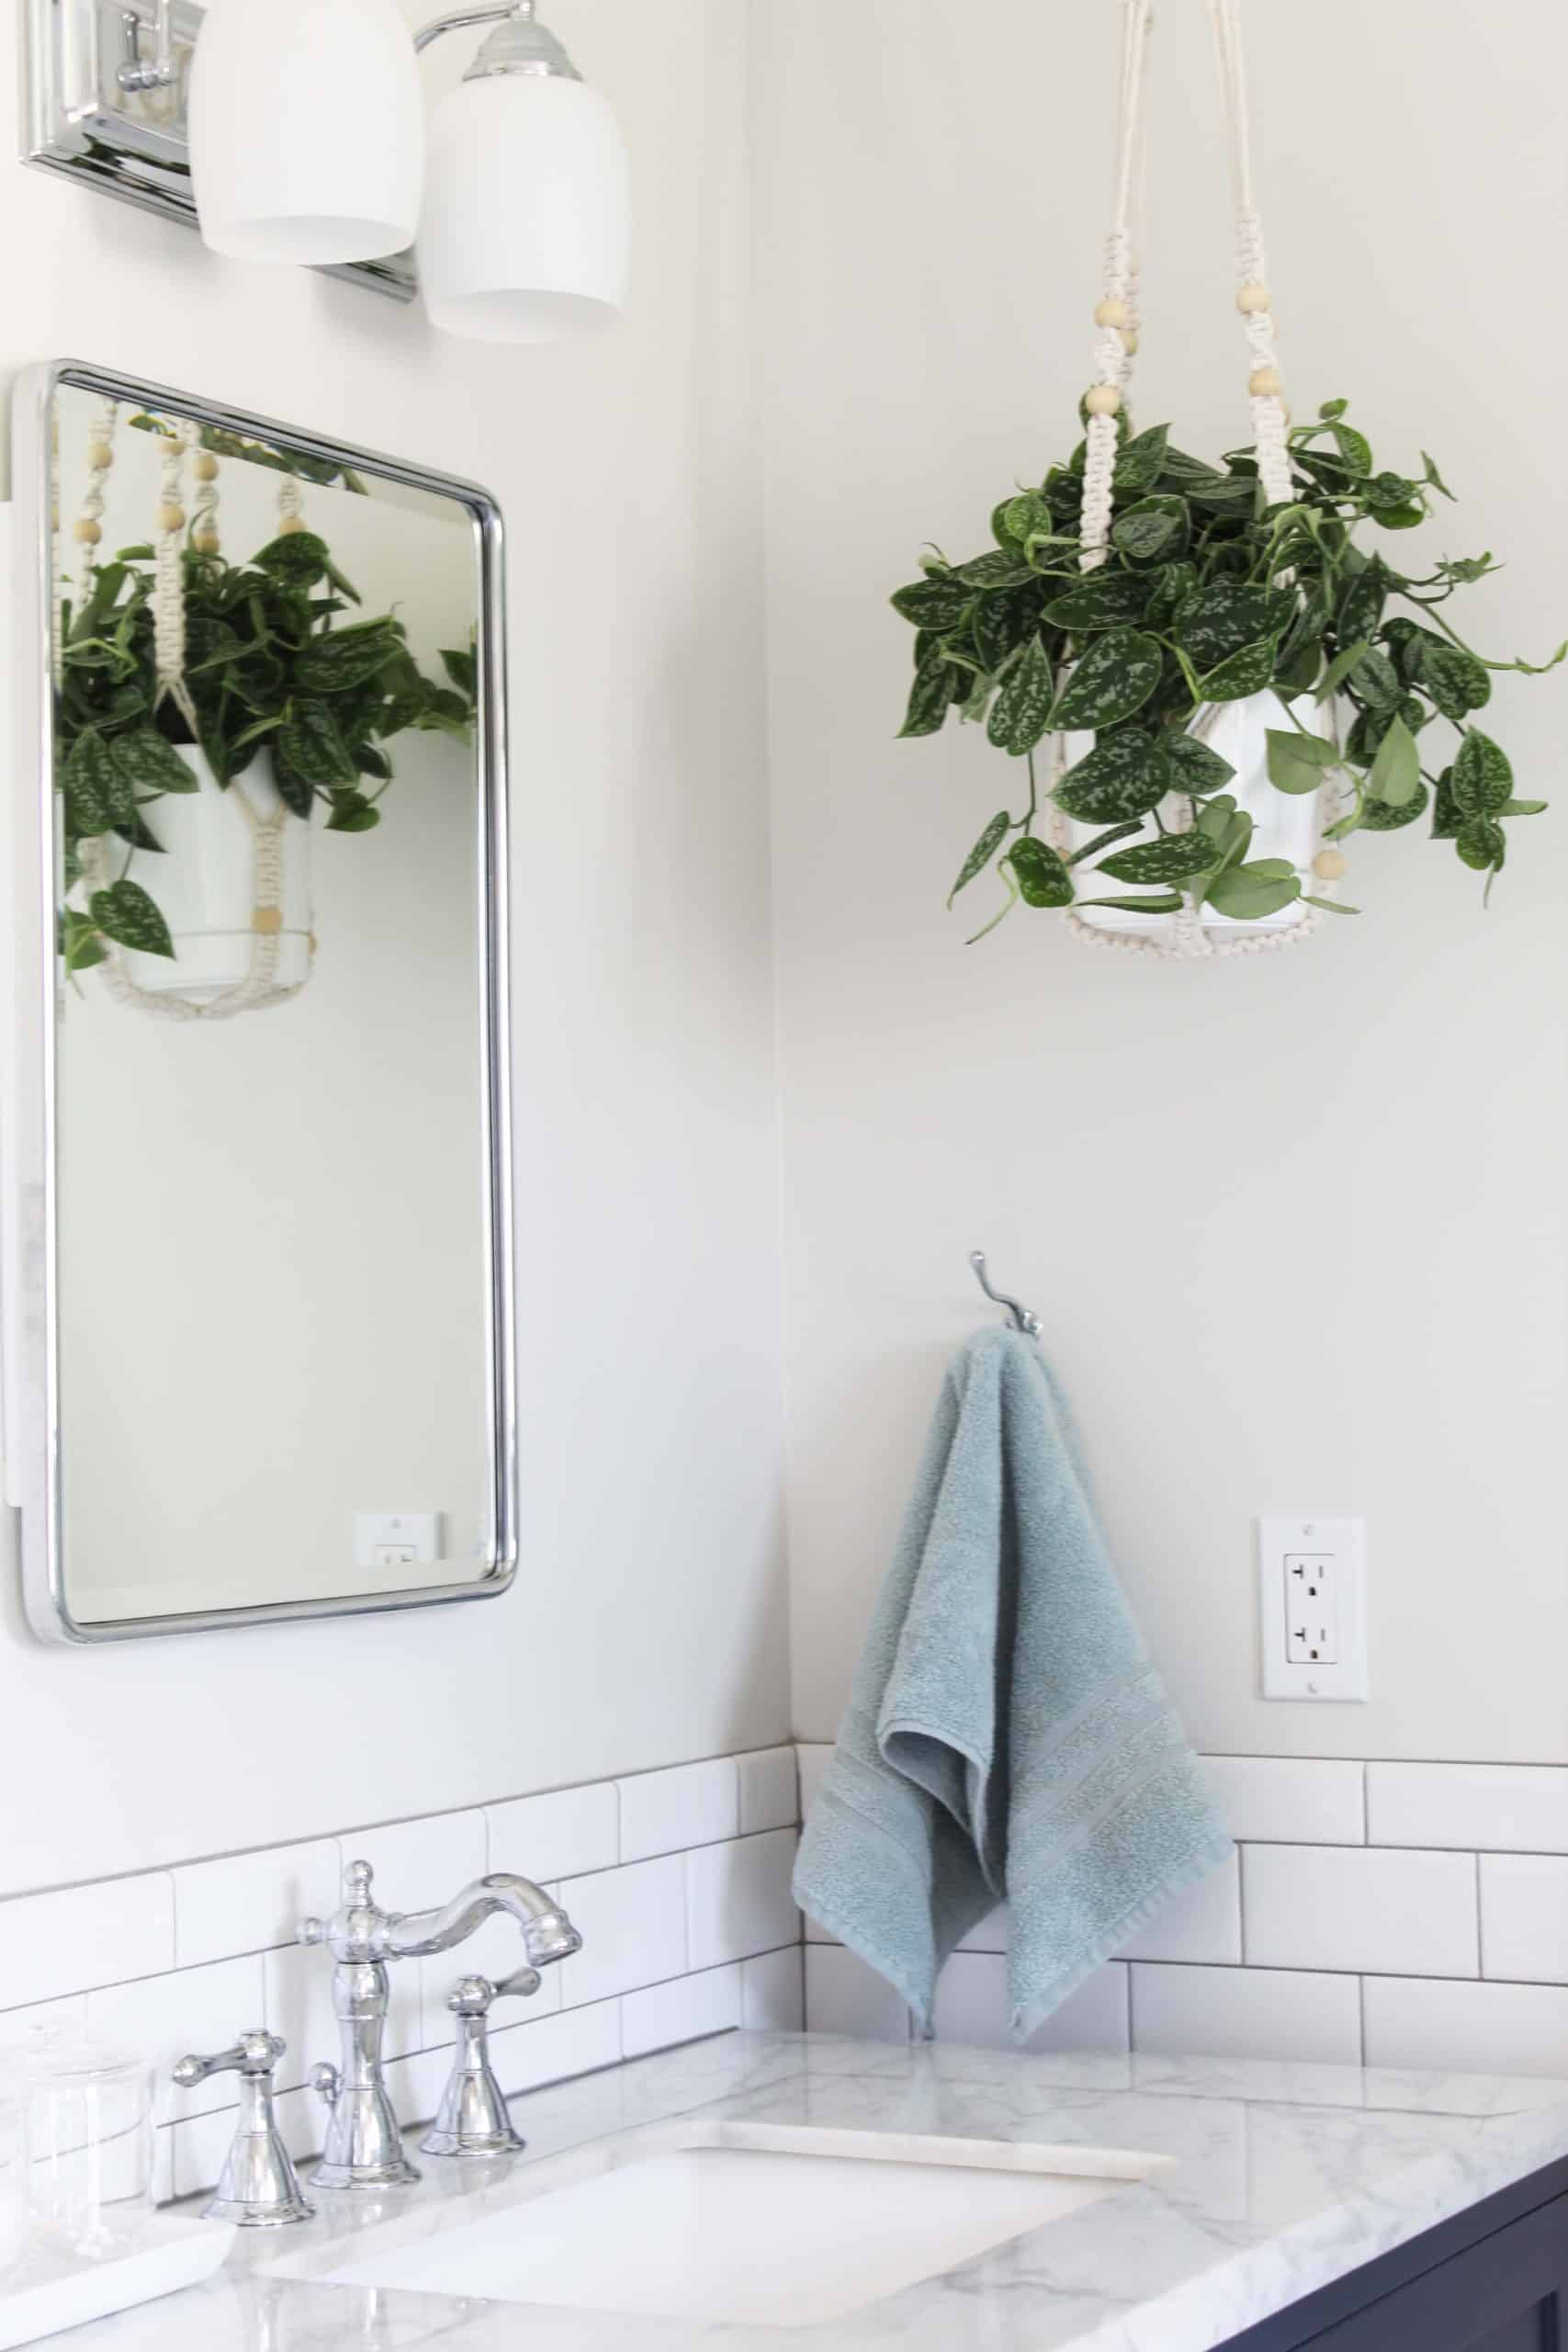 hanging macrame plant in bathroom, subway tile with gray grout, pottery barn recessed medicine cabinet